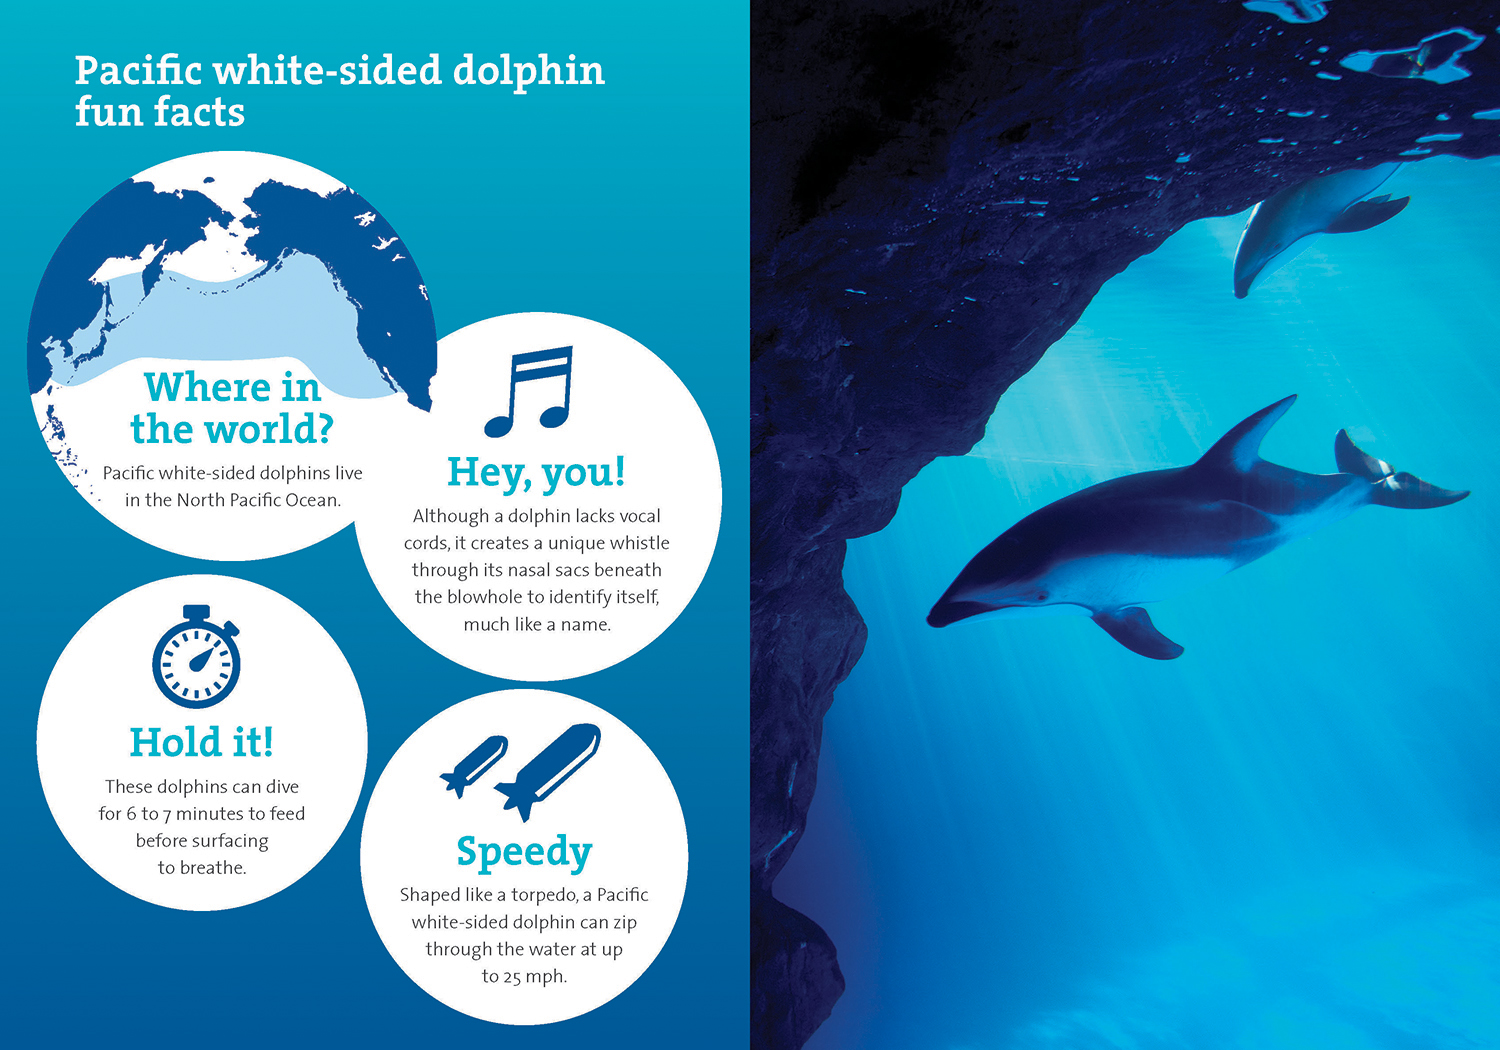 A two-page spread. White informational circles on the left side are labeled with a headline reading 'Fun Pacific white-sided dolphin facts'. Each circle has a descriptive or fun icon and each reads, 'where in the world?', 'Hey, you!', 'think positive', and 'Speedy'. On the right page is a photo of two dolphins swimming near some underwater rocks.